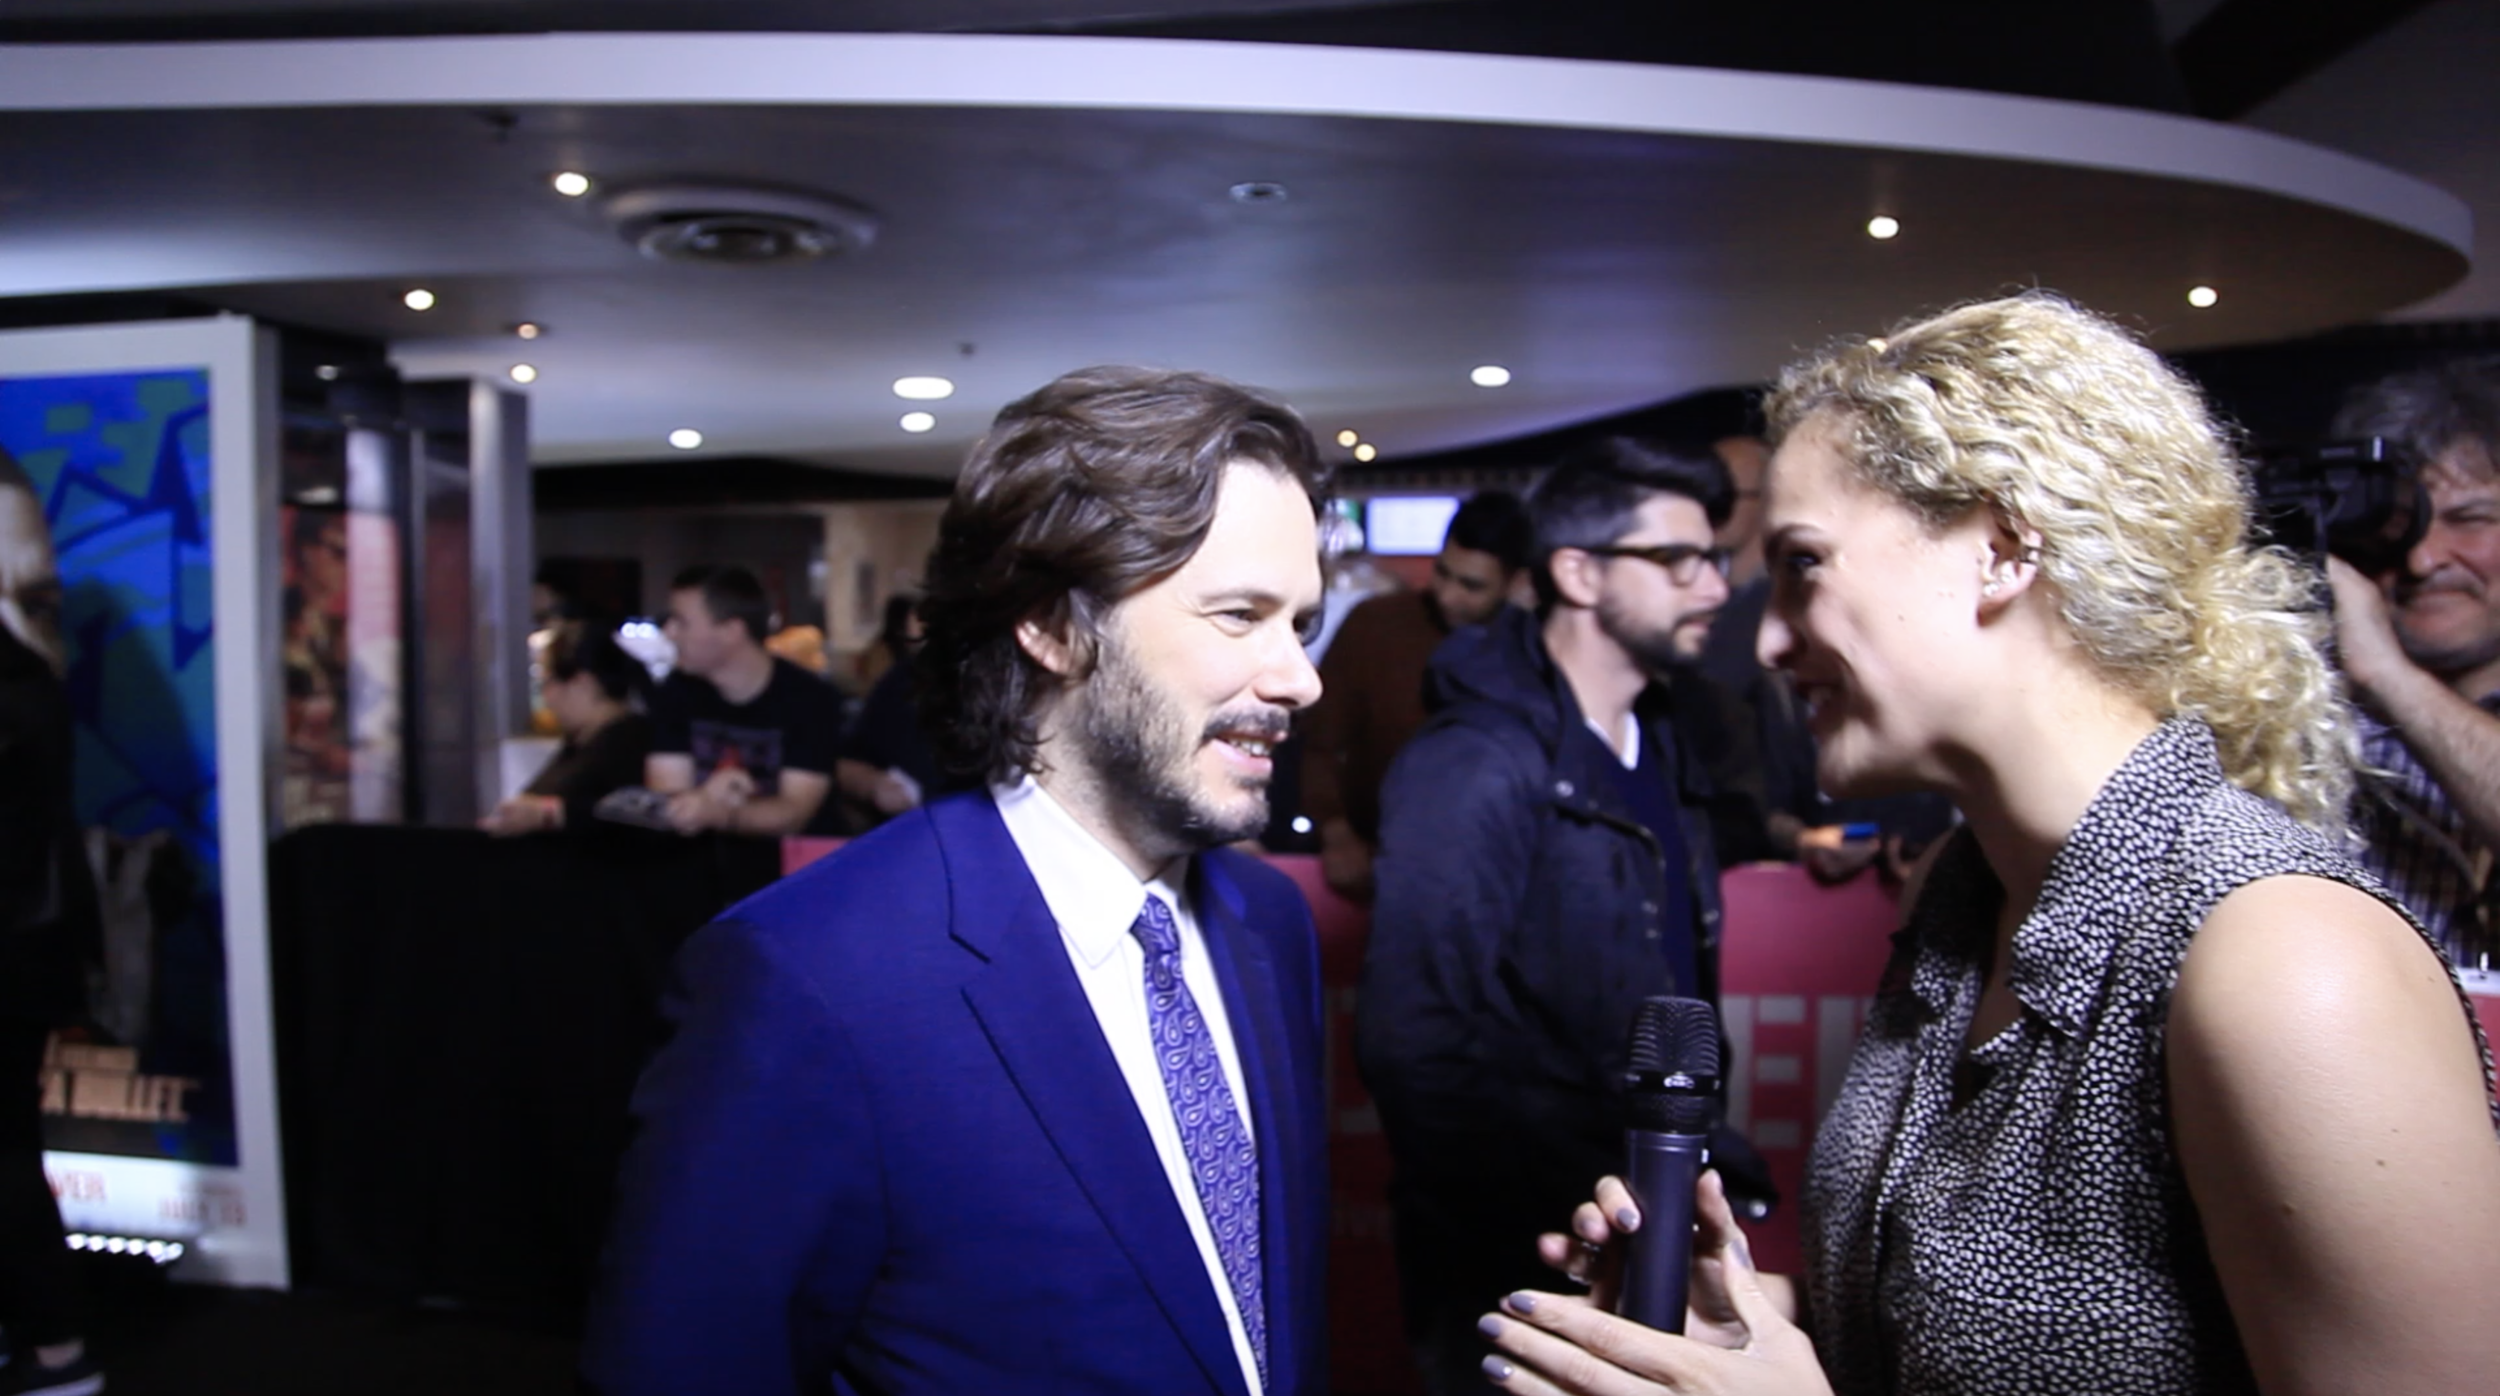 The moment I told Edgar Wright I was a huge fan of his Cornetto Trilogy